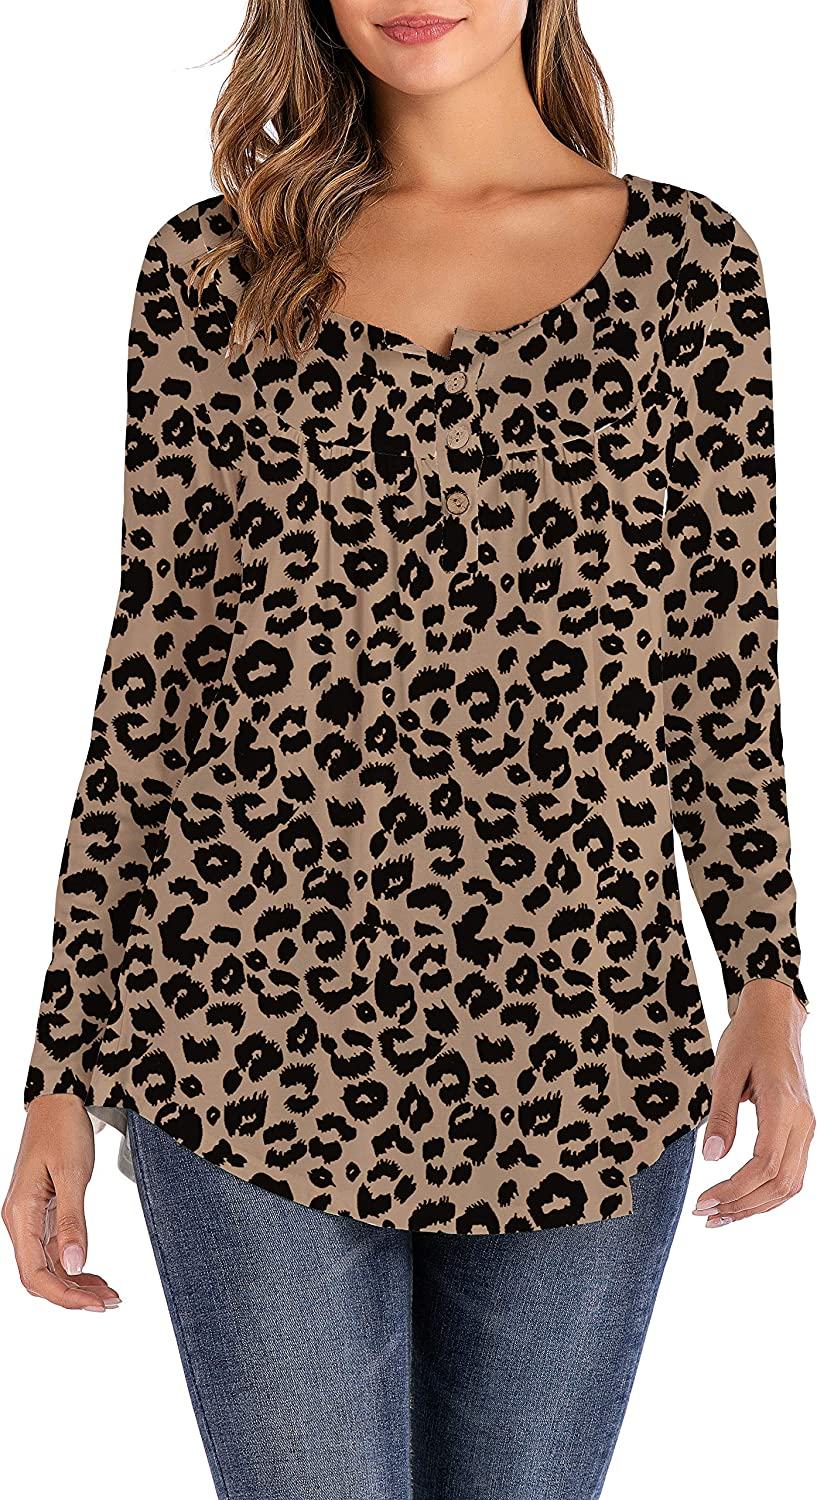 Aokosor Ladies Tops Long Sleeved Round Neck Tunic Tops